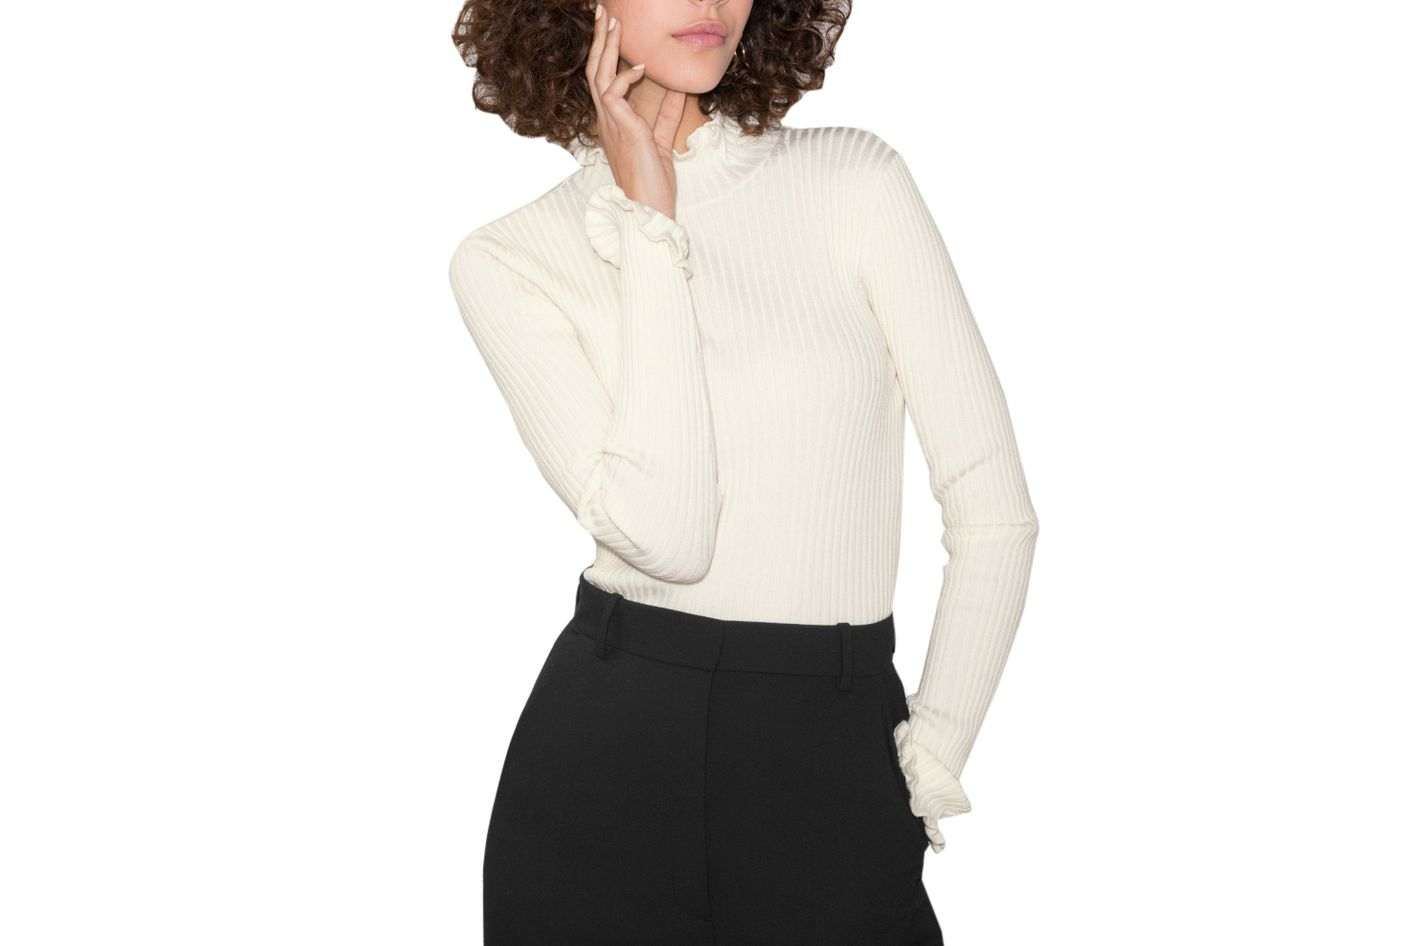 & Other Stories Ruffles and Ribbed Turtleneck